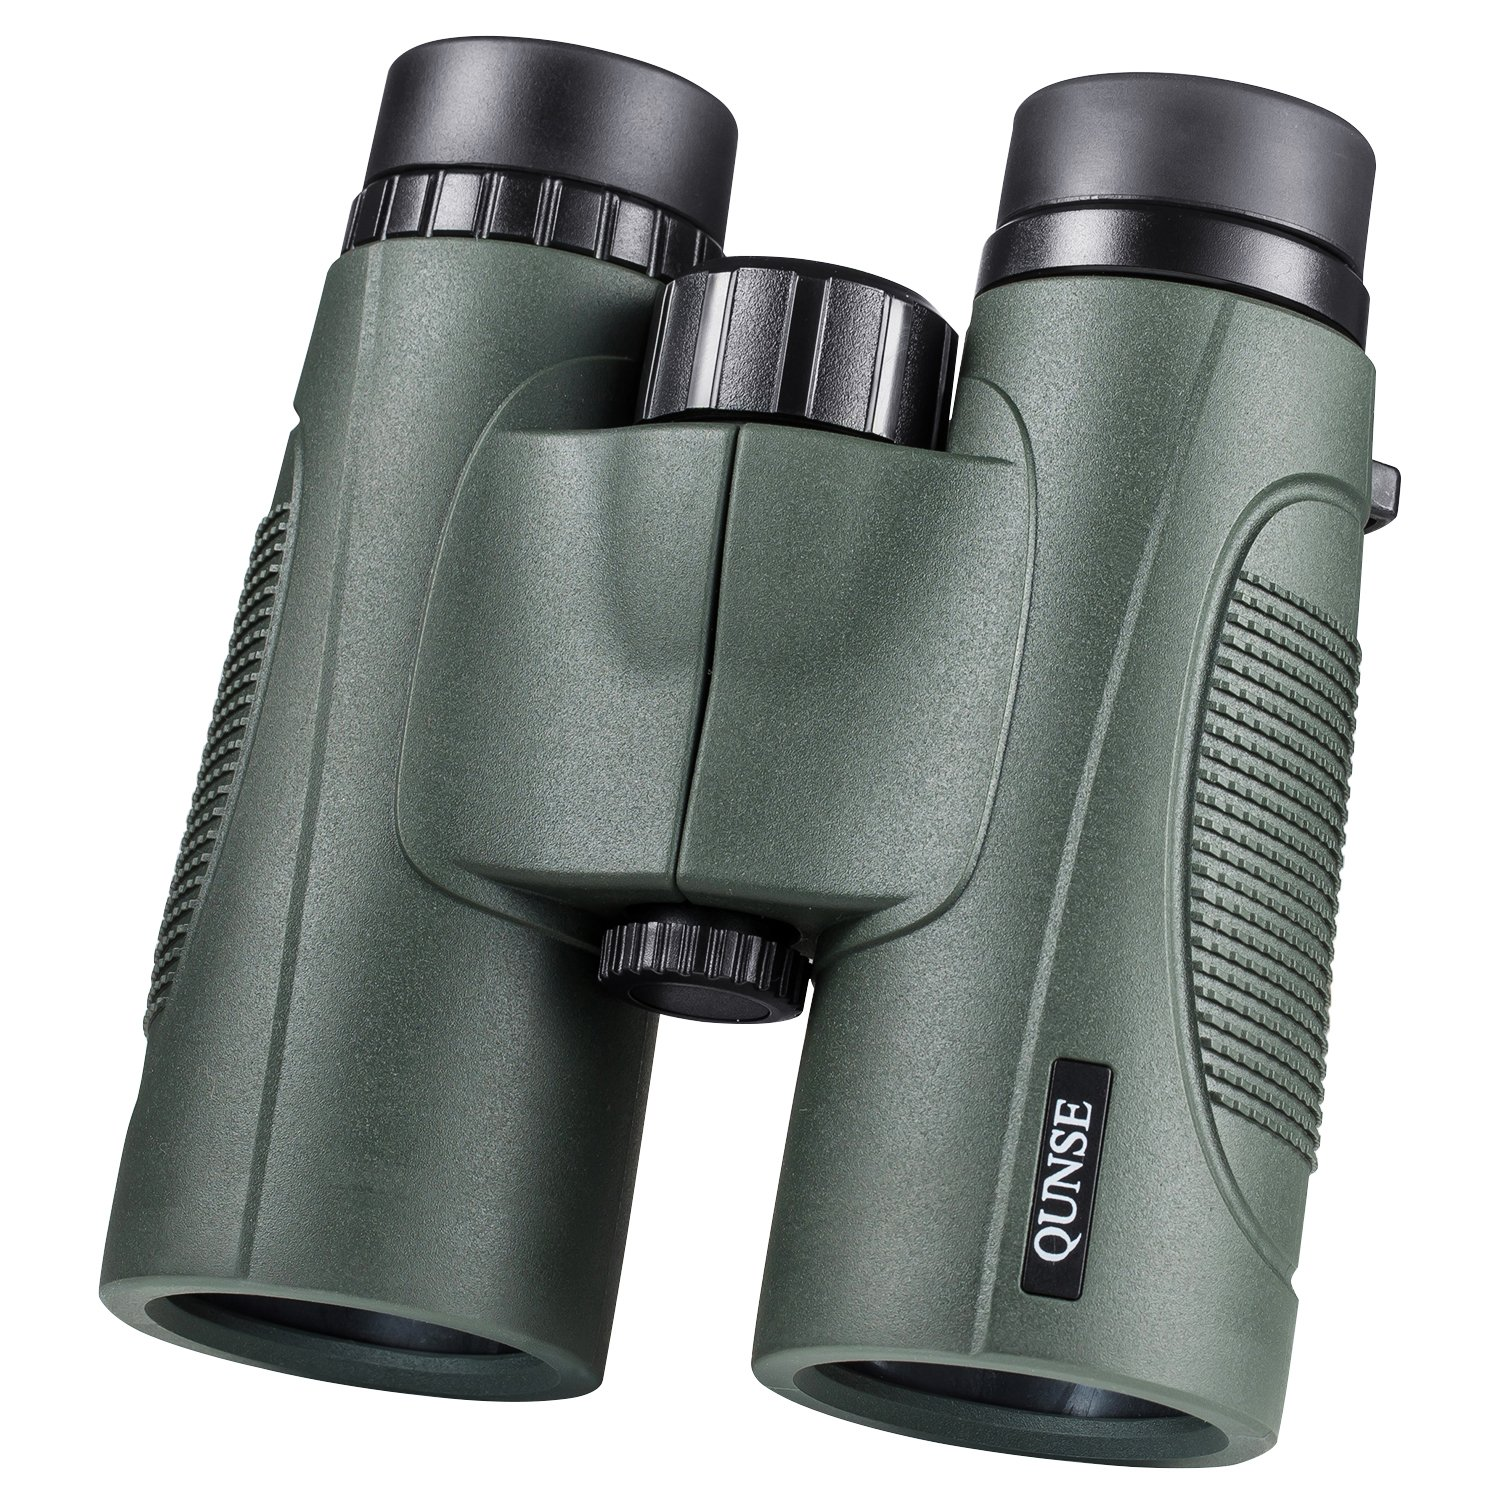 QUNSE 10x42 Binoculars for Adults Compact,BAK4 Prism FMC Lens Powerful Binocular with Phone Adapter,Harness,Wire Shutter and Tripod Adapter for Bird Watching,Safari and Outdoor Games by QUNSE